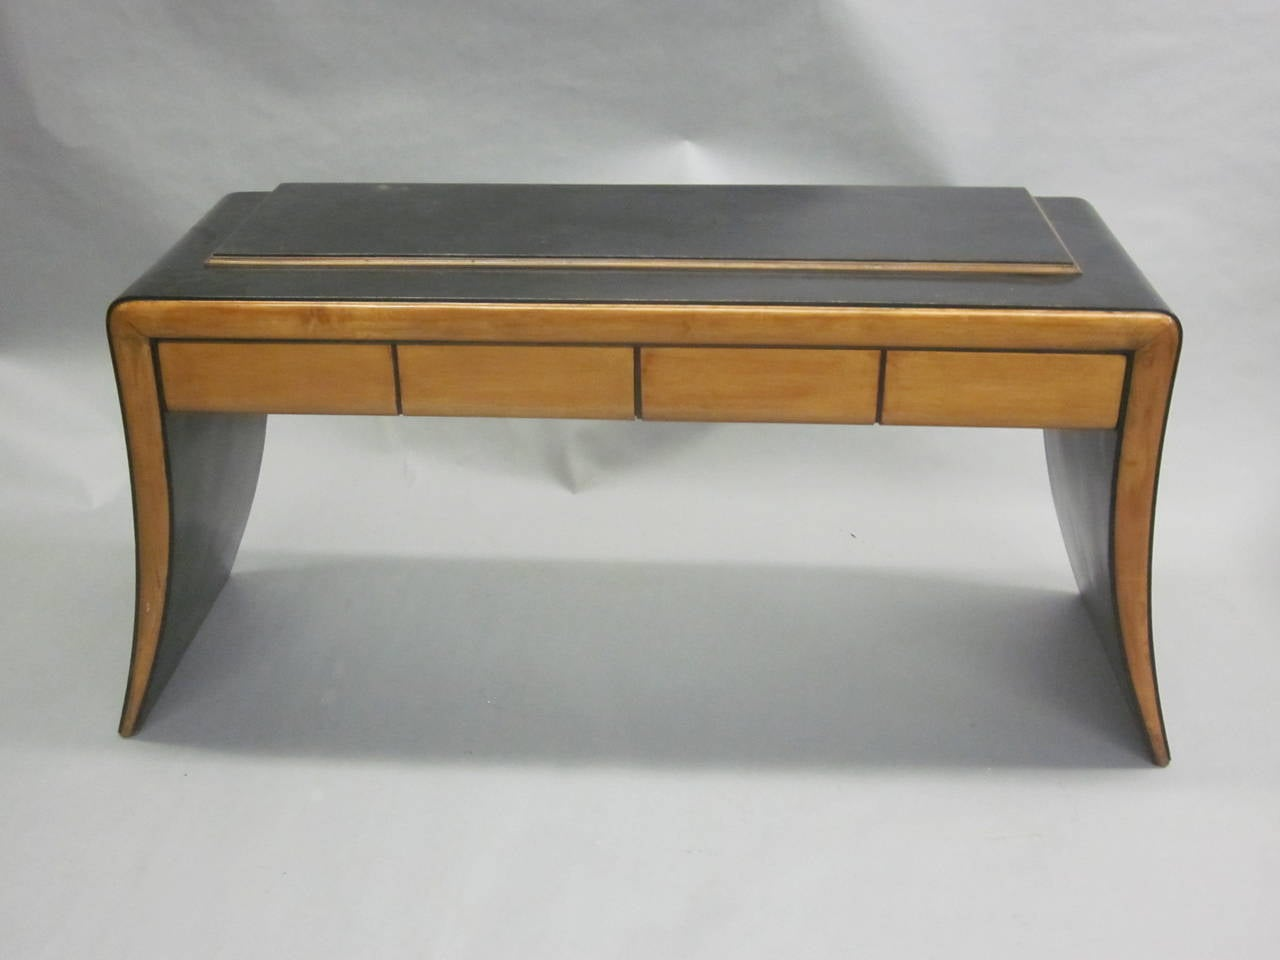 Ebonized Italian Art Deco / Modern Neoclassical Vanity / Sofa Table by Paolo Buffa, 1930 For Sale